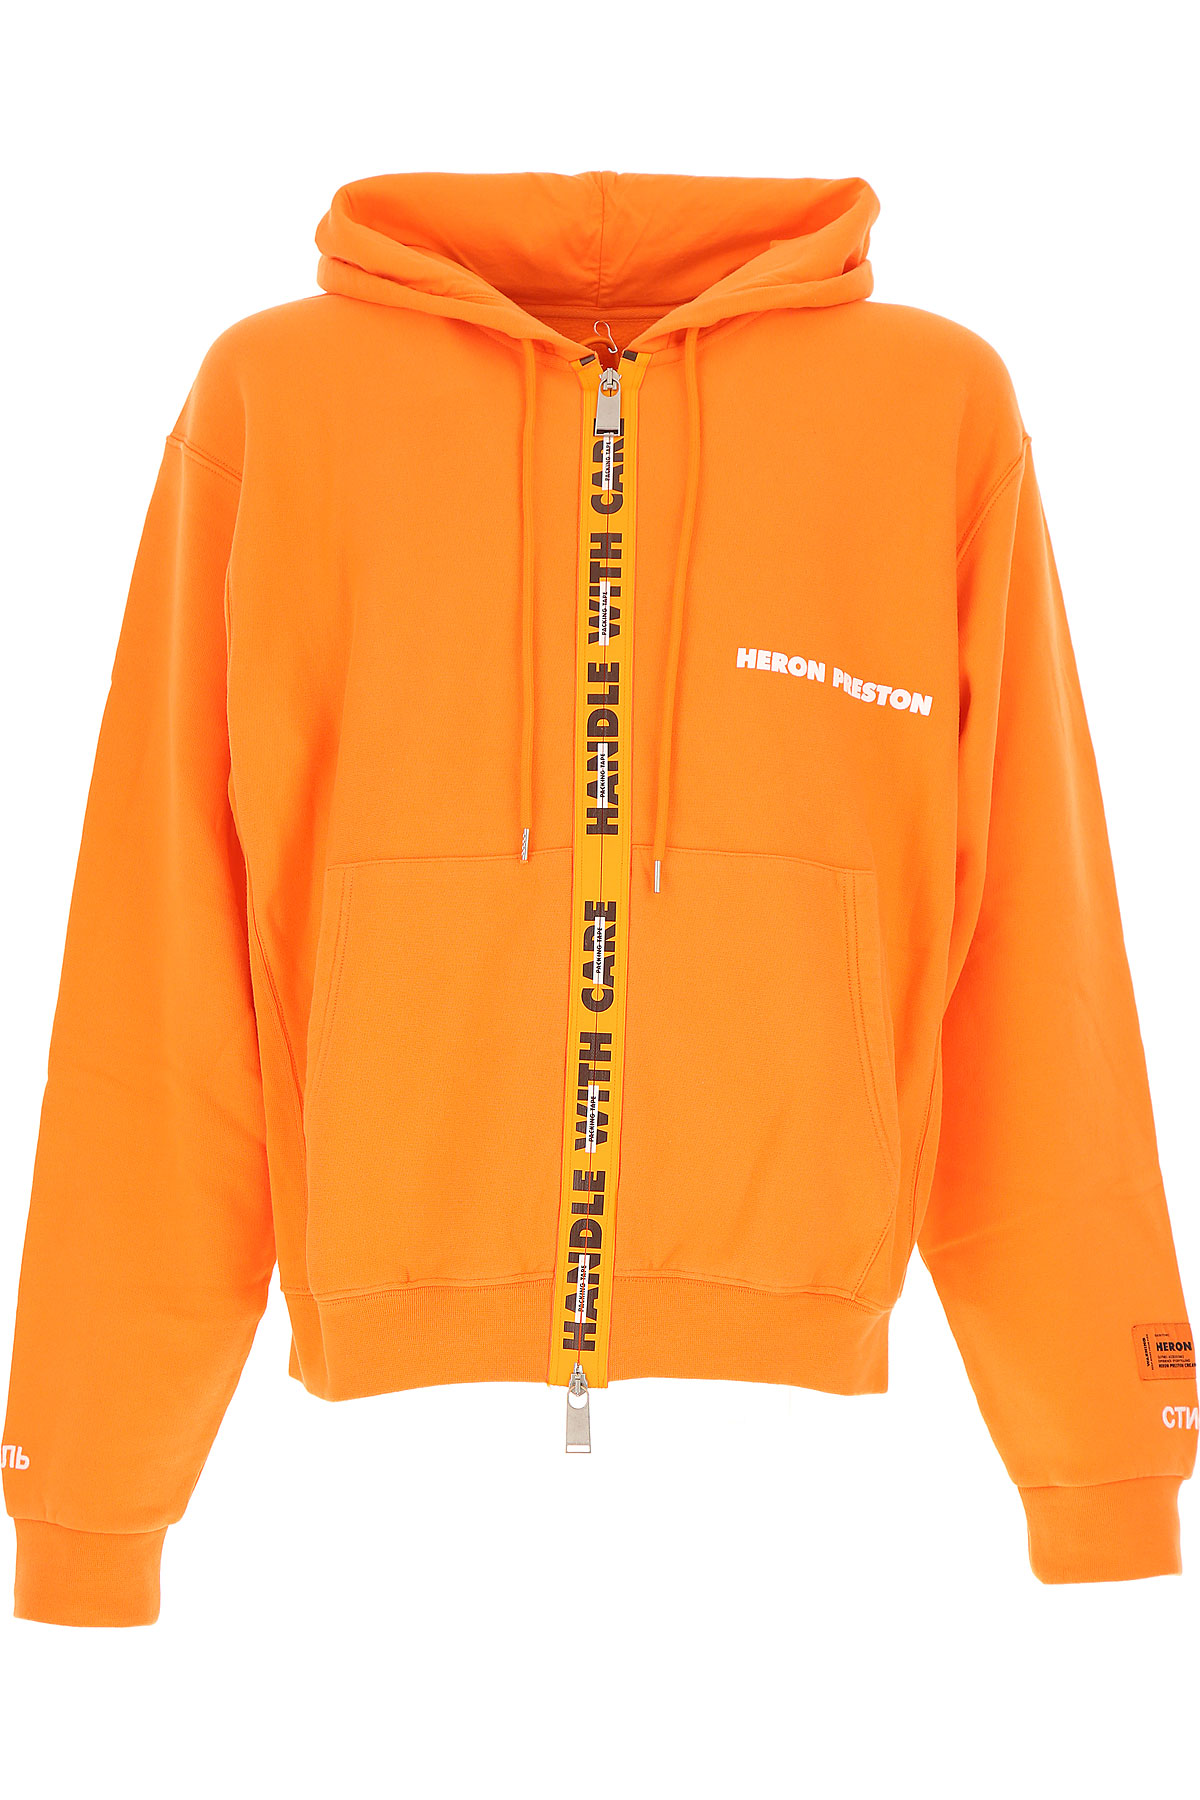 Heron Preston Sweatshirt for Men, neon orange, Cotton, 2017, L M XL USA-476485